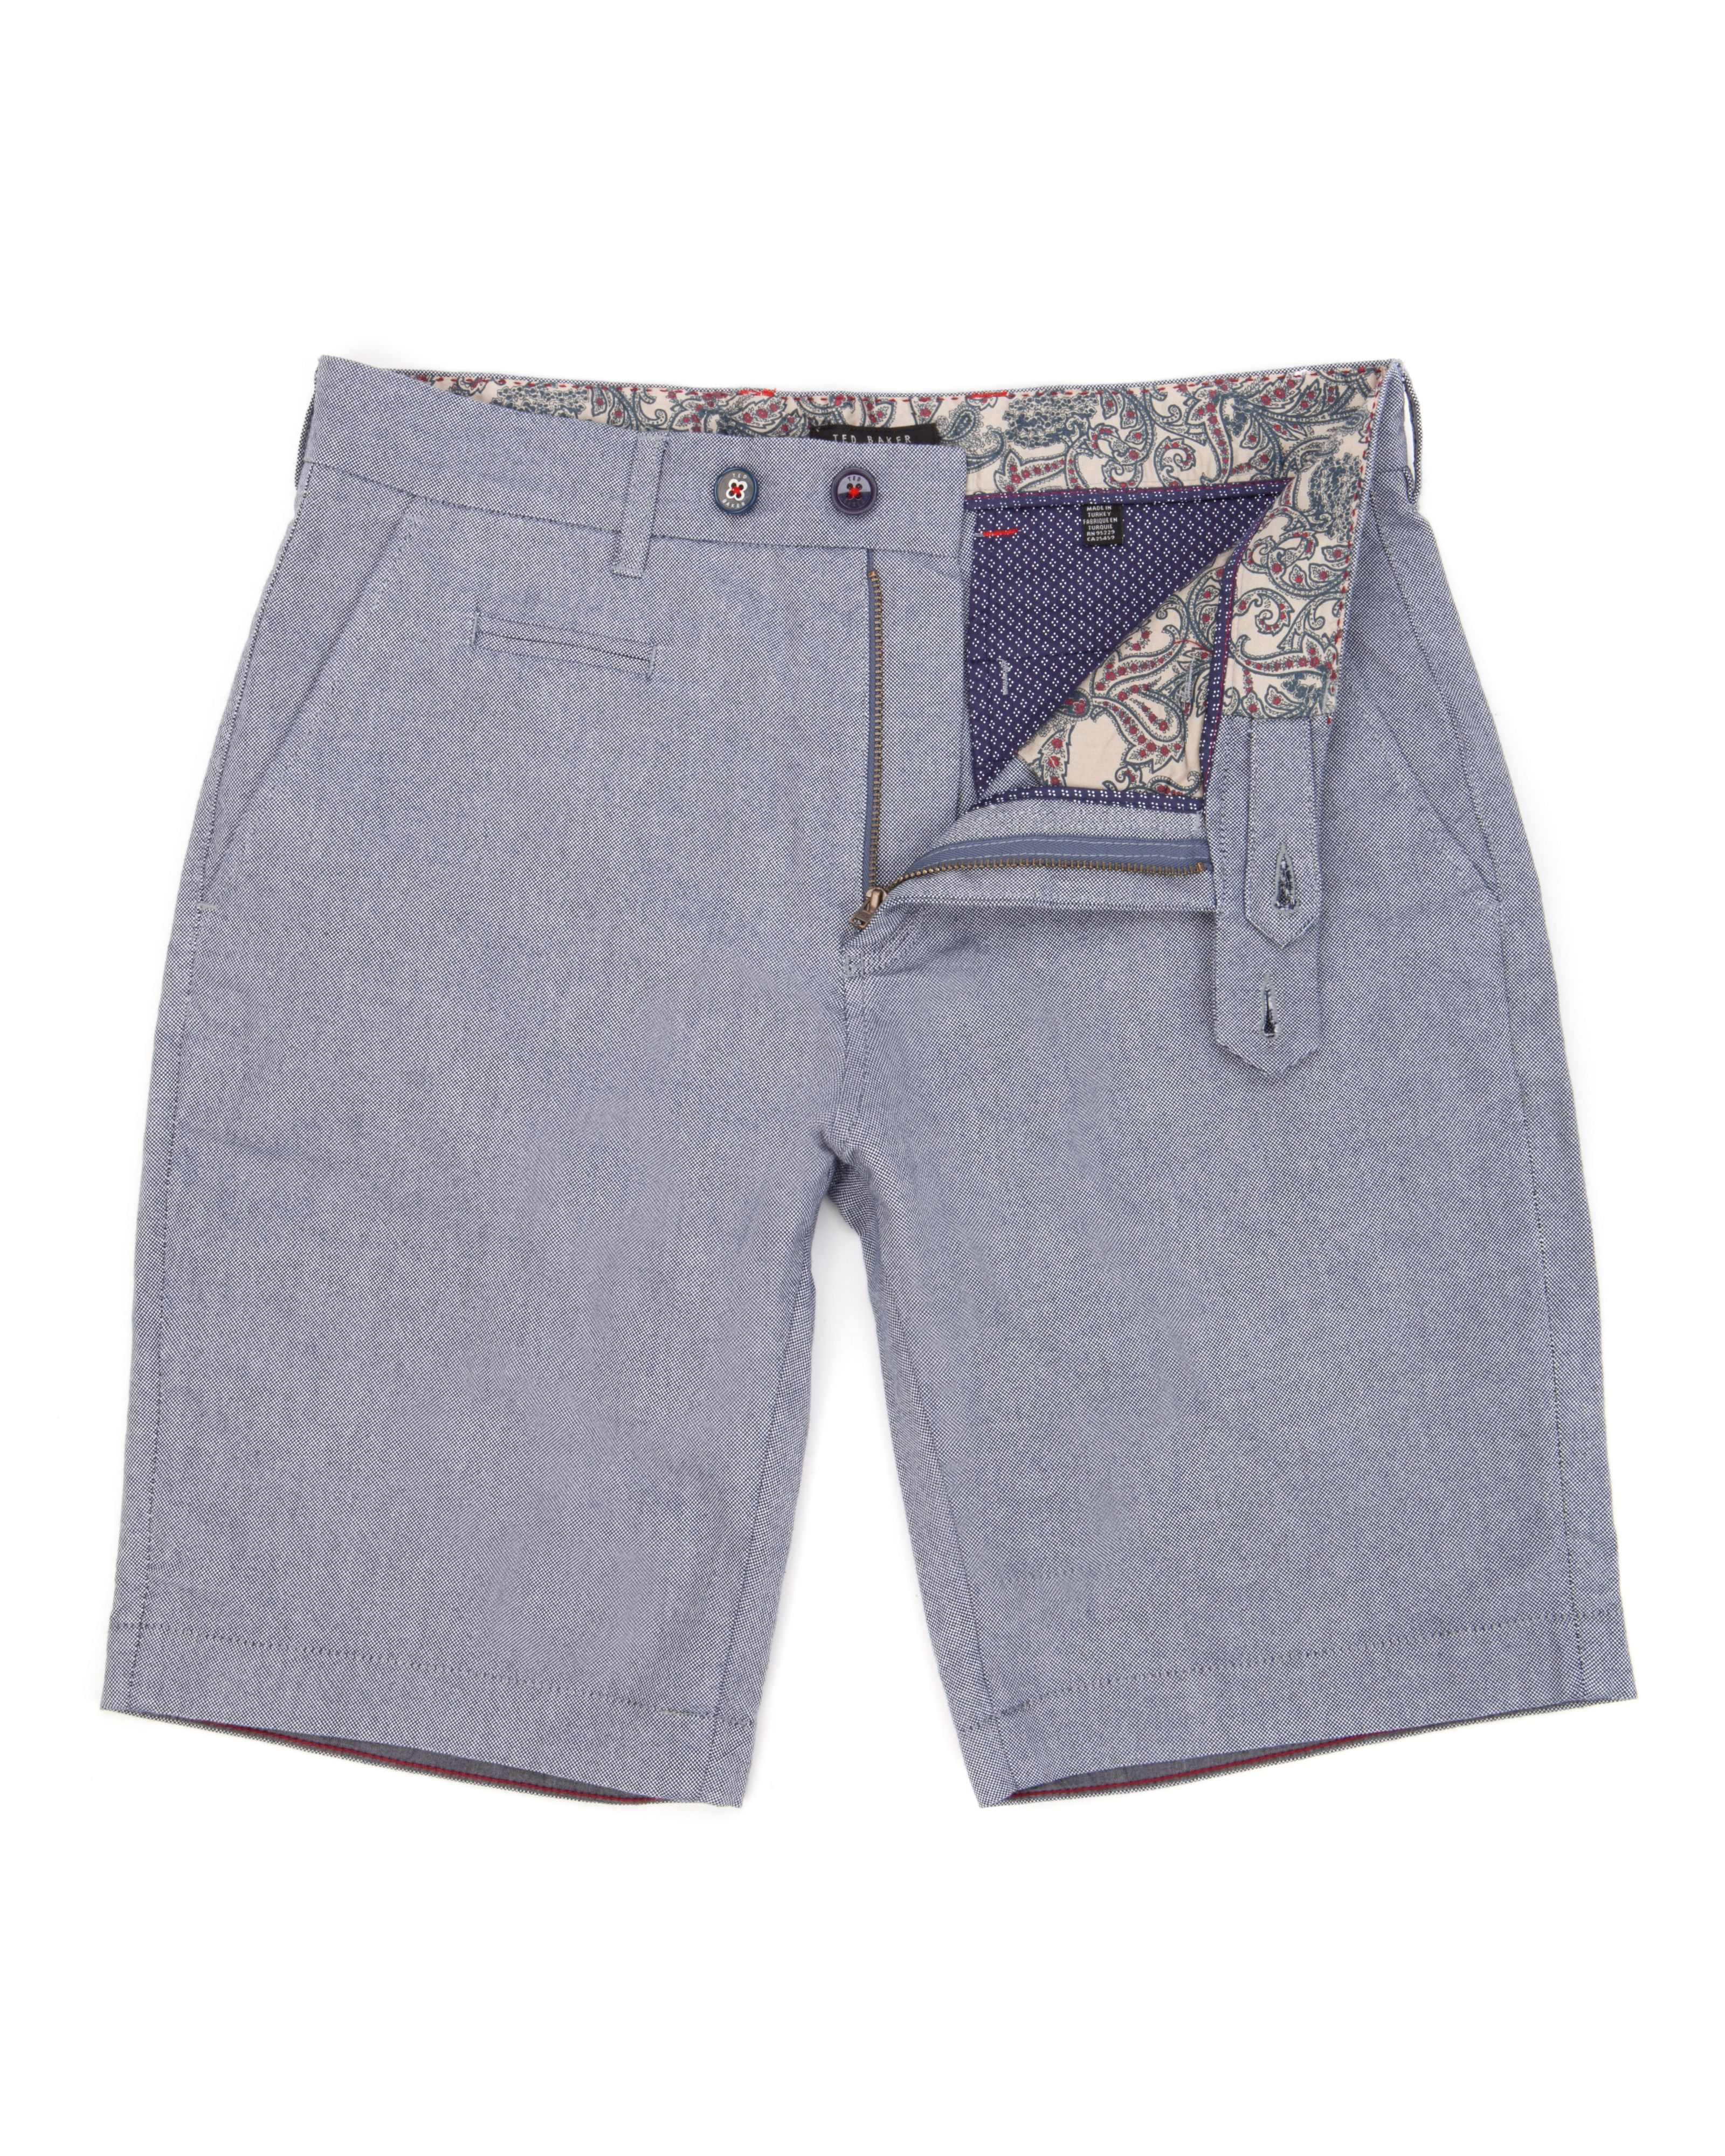 Oxshor cotton oxford shorts